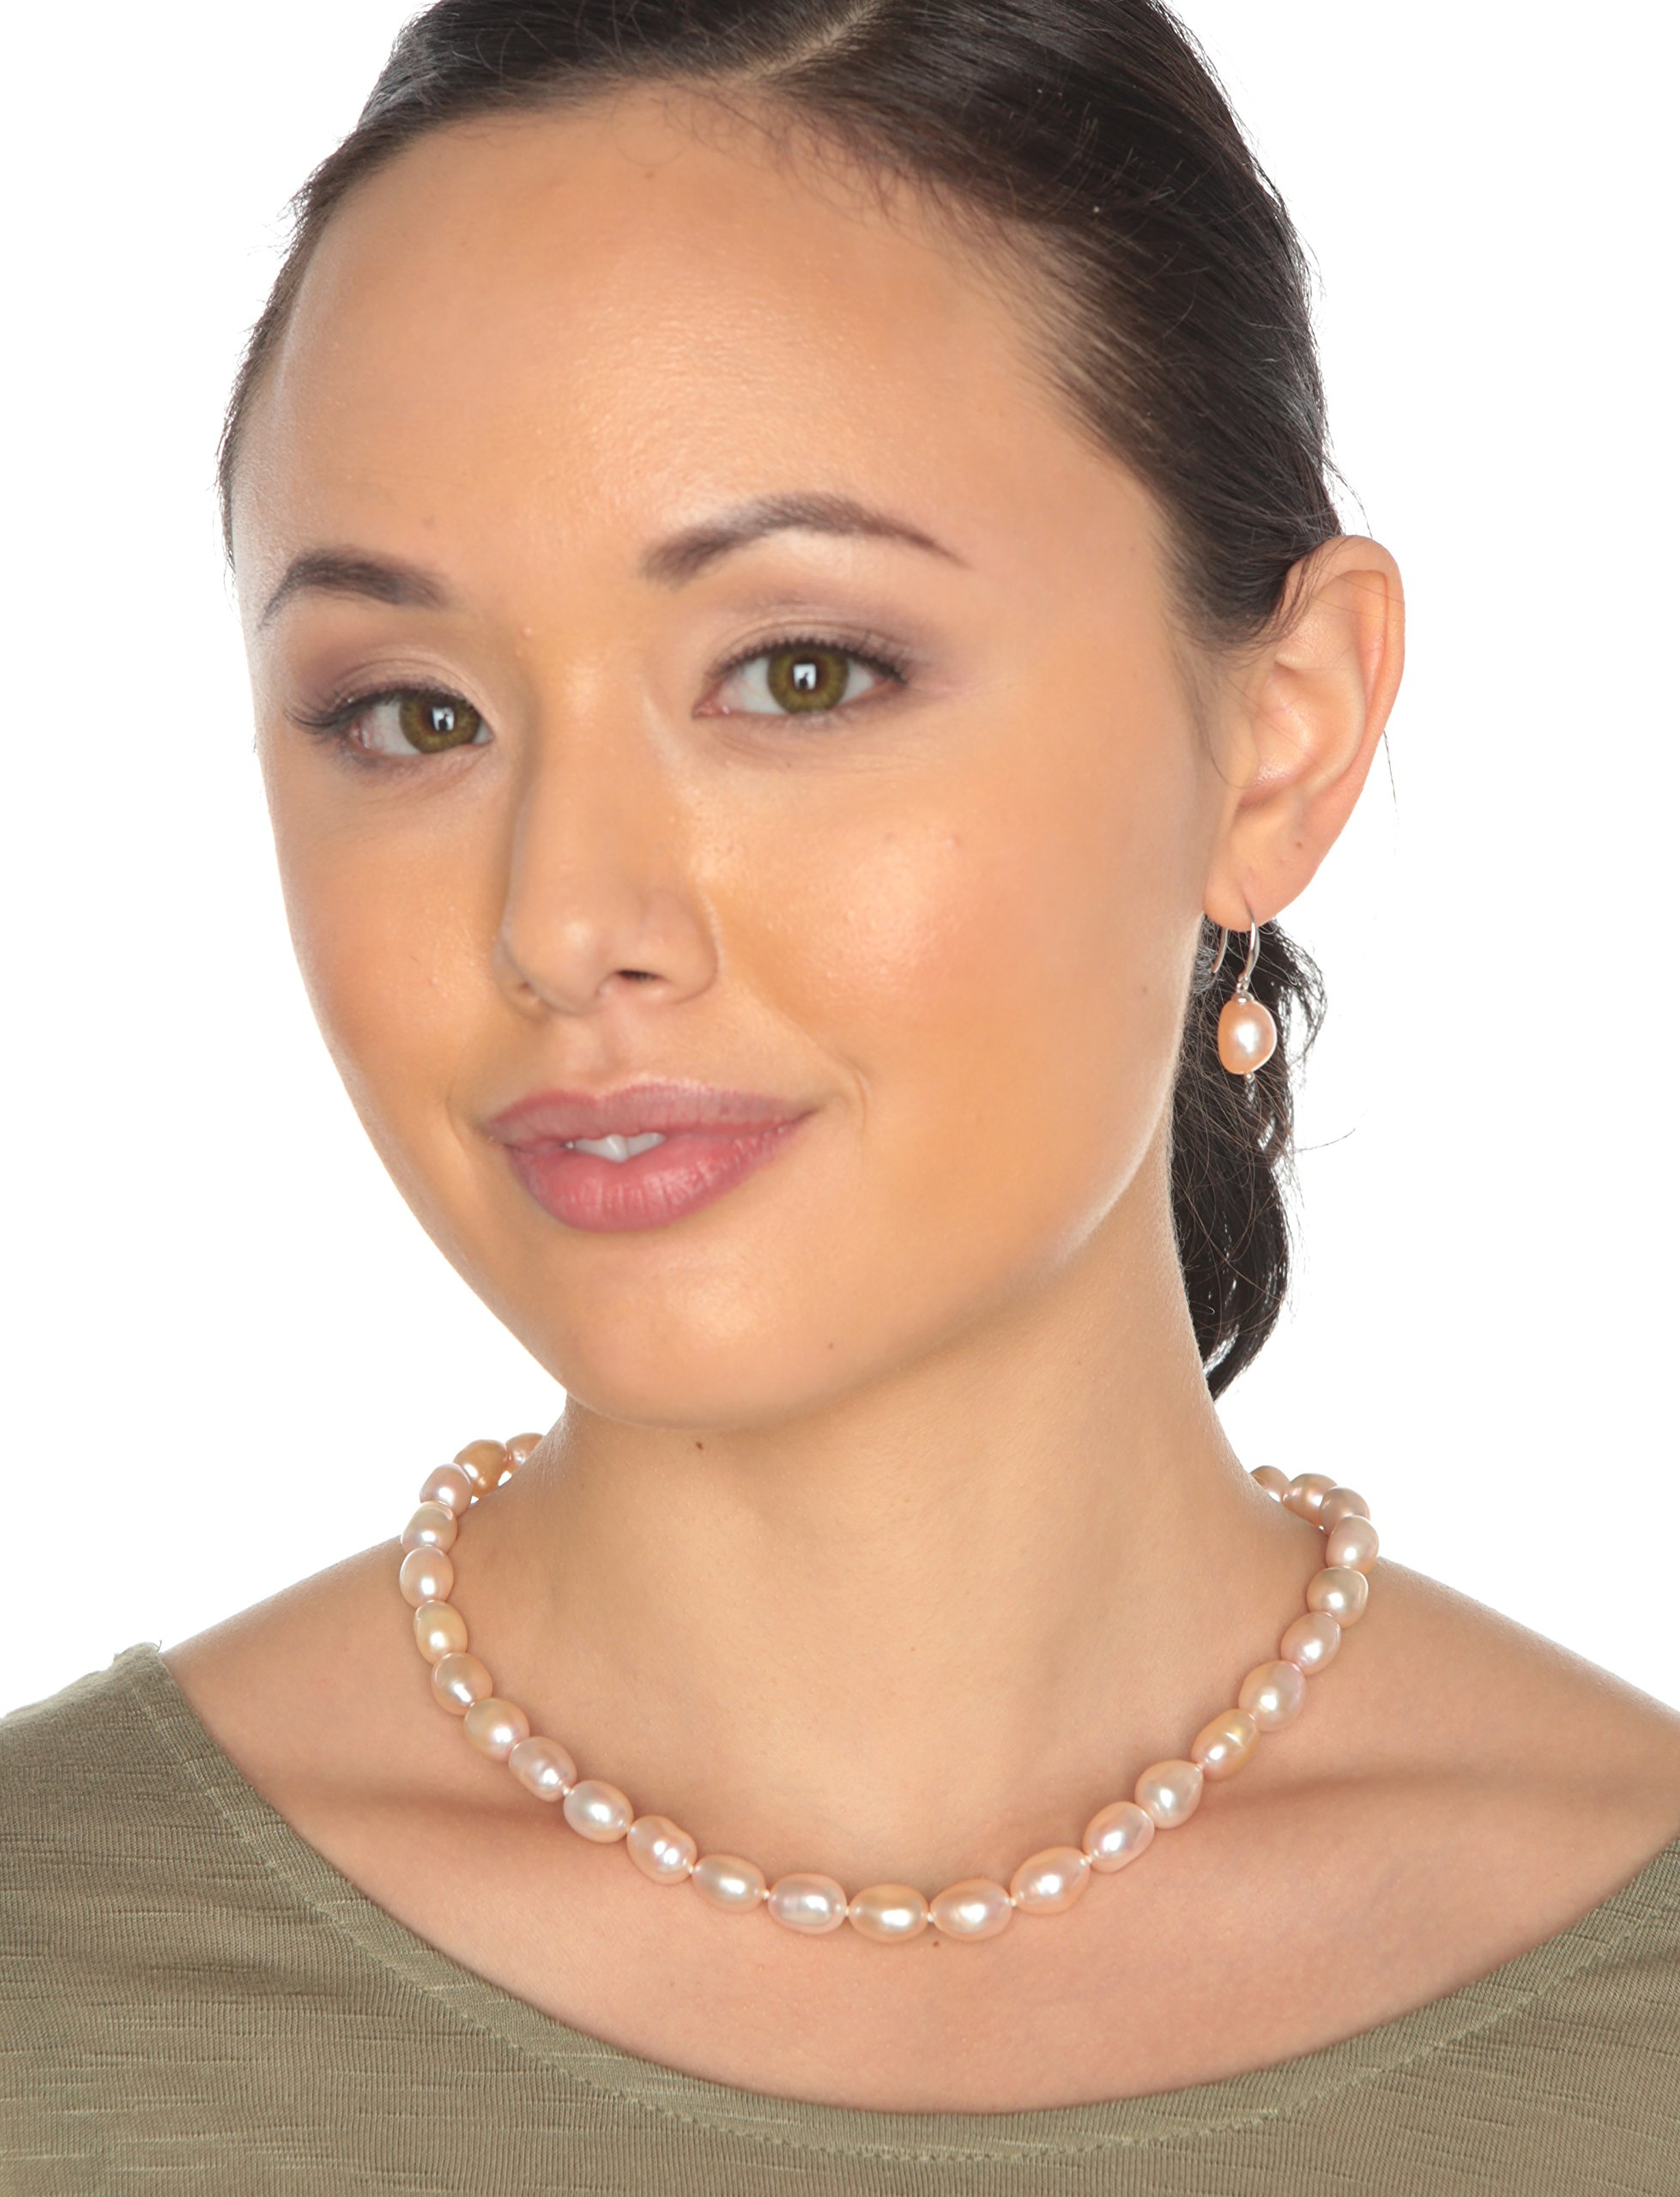 HinsonGayle AAA Handpicked 10-11mm Pink Baroque Freshwater Cultured Pearl Necklace (Silver )-18 in length by HinsonGayle Fine Pearl Jewelry (Image #2)